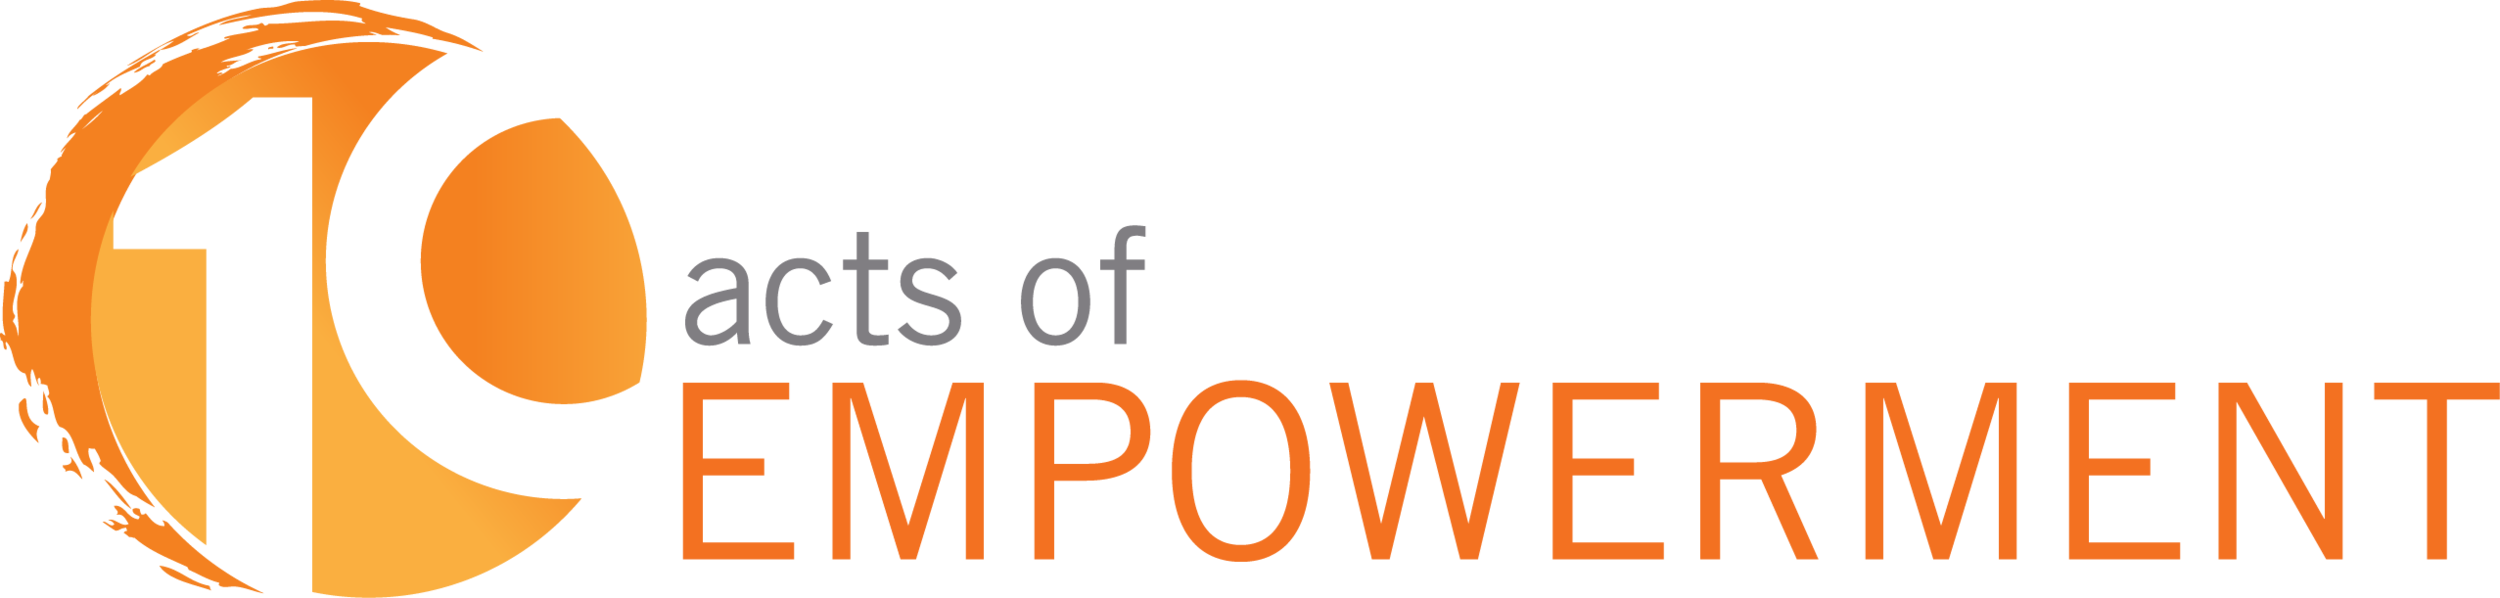 Acts of Empowerment mark.png